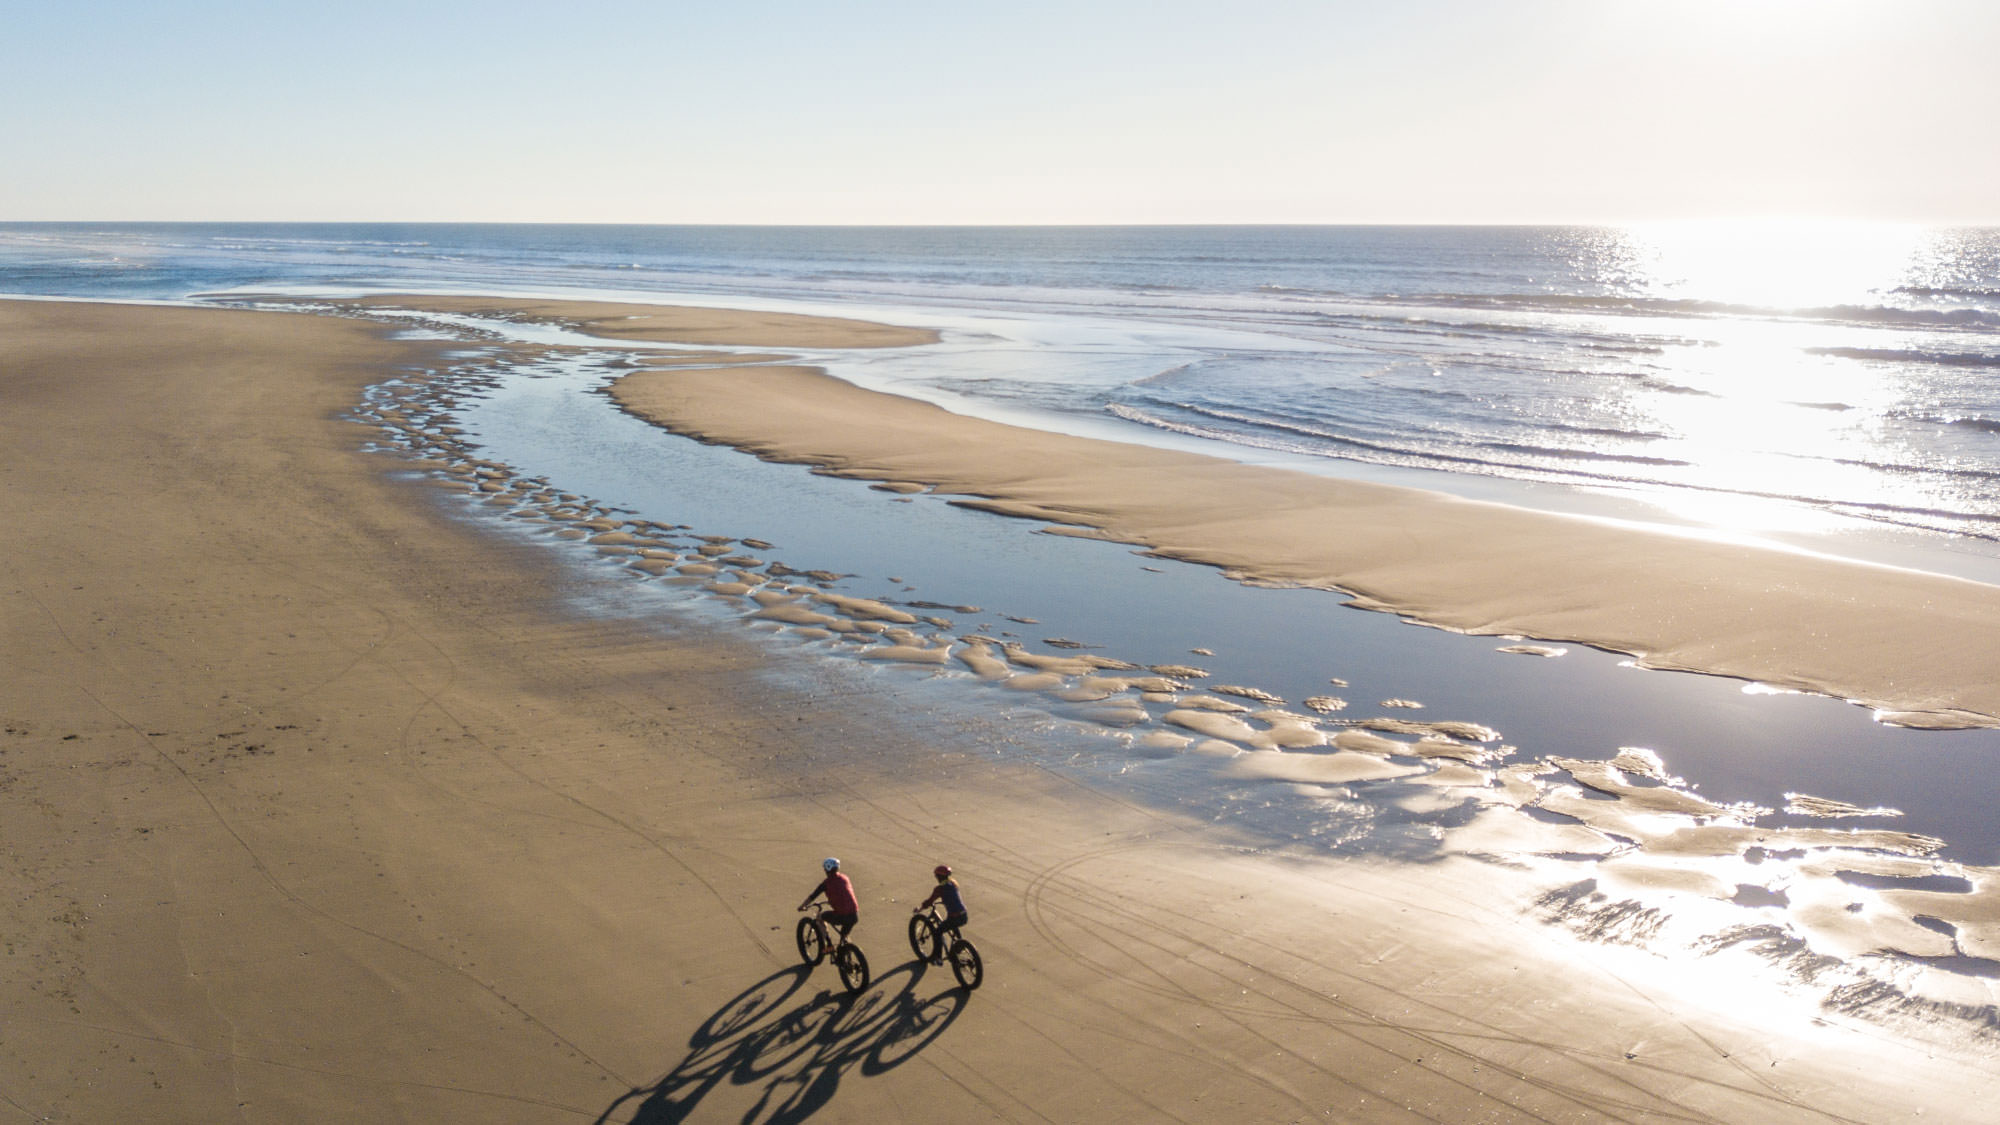 A bird's-eye view above beach fat bikers reveals a wide-open coastline with just cyclists in sight.